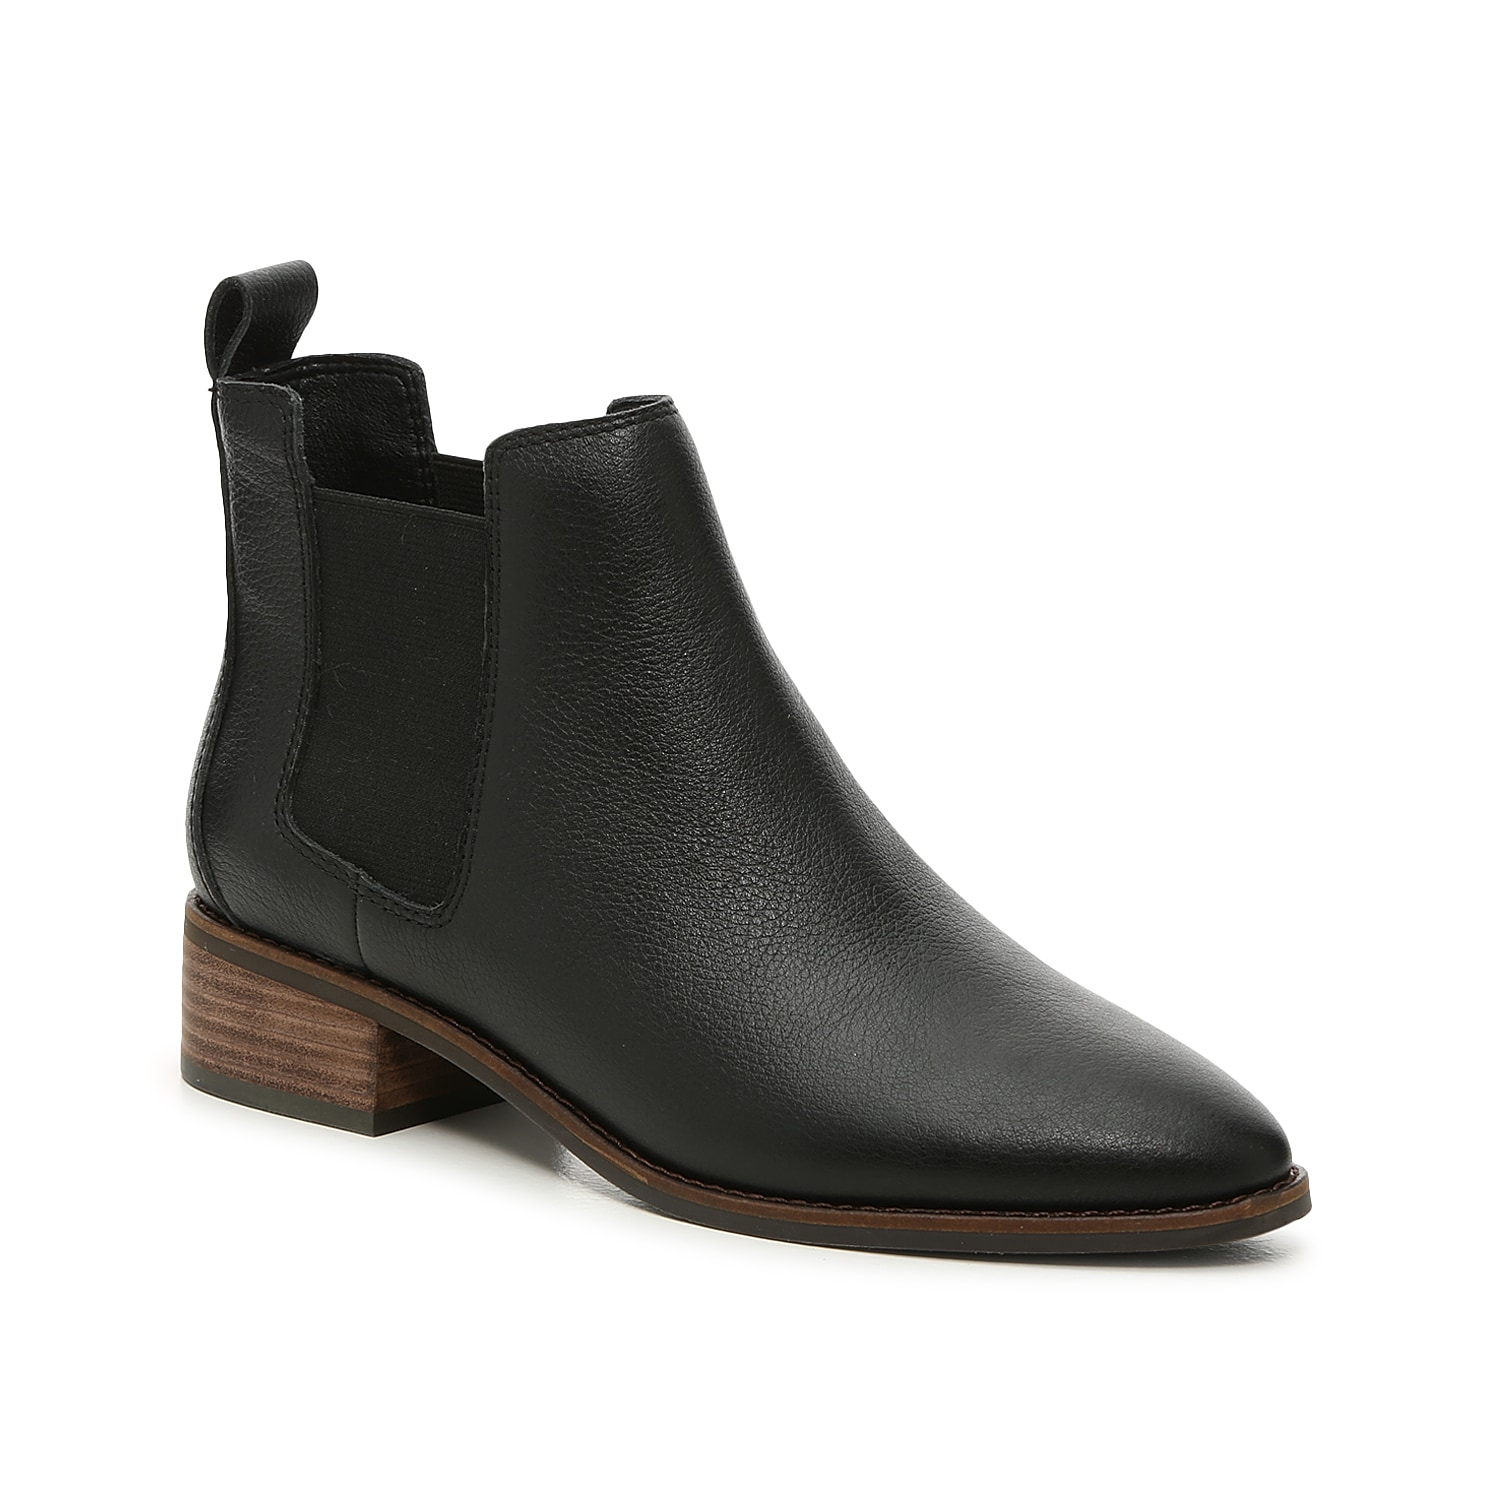 Give your cool weather look a classic finish with the Lufti Chelsea boot from Lucky Brand. This ankle boot rocks a low block heel and sleek almond toe for added style.Click here for Boot Measuring Guide.